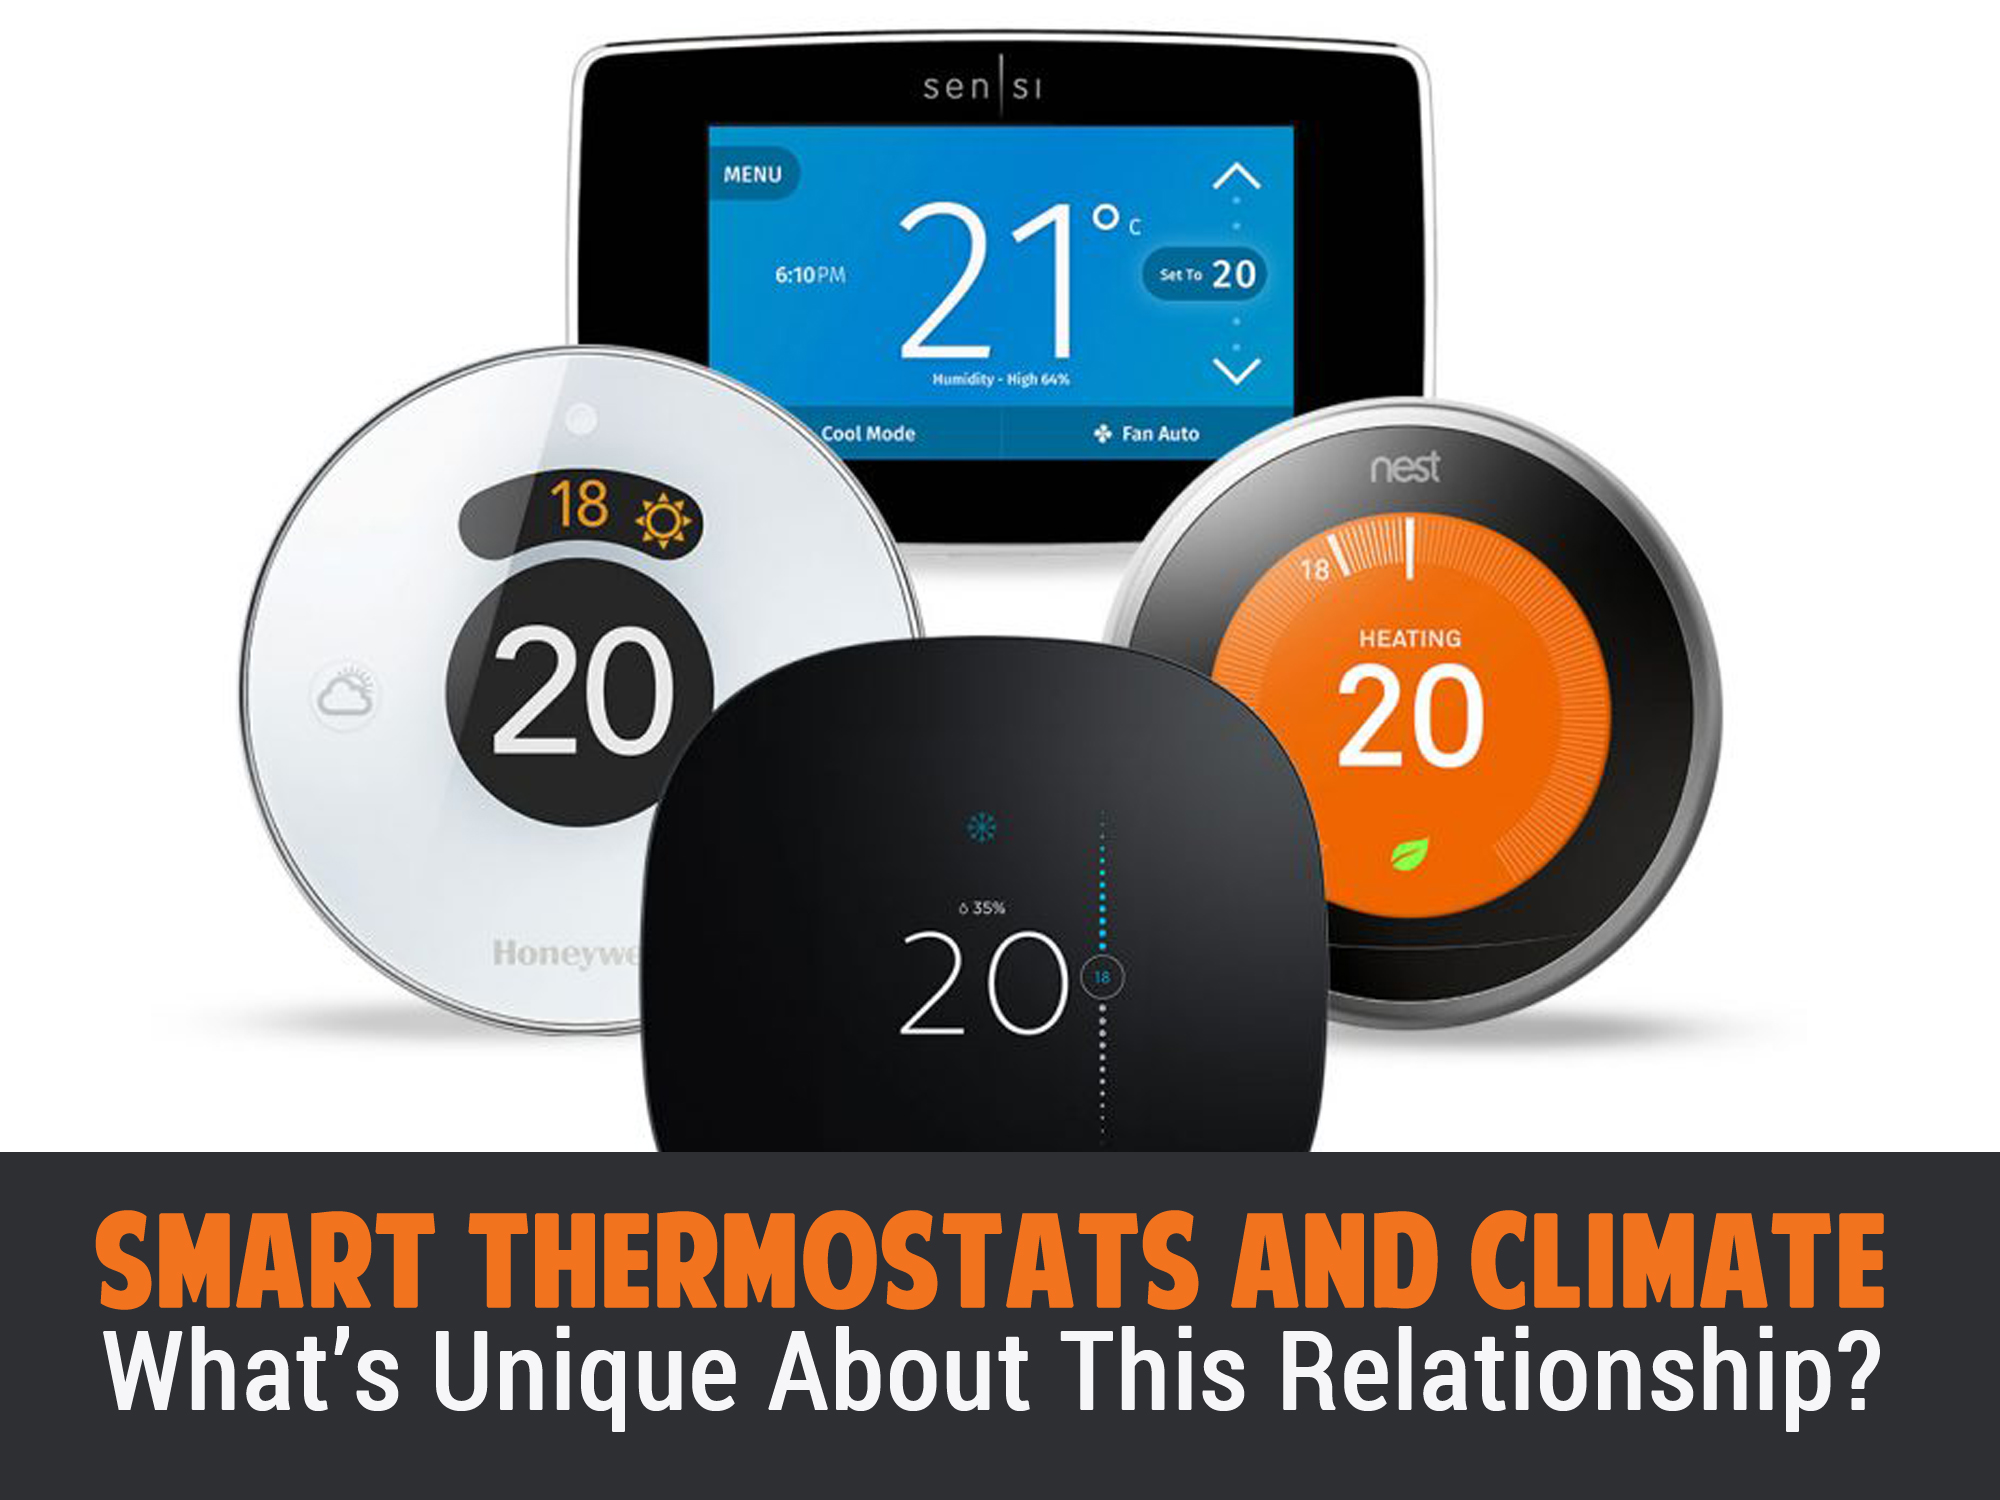 Smart Thermostats and climate change